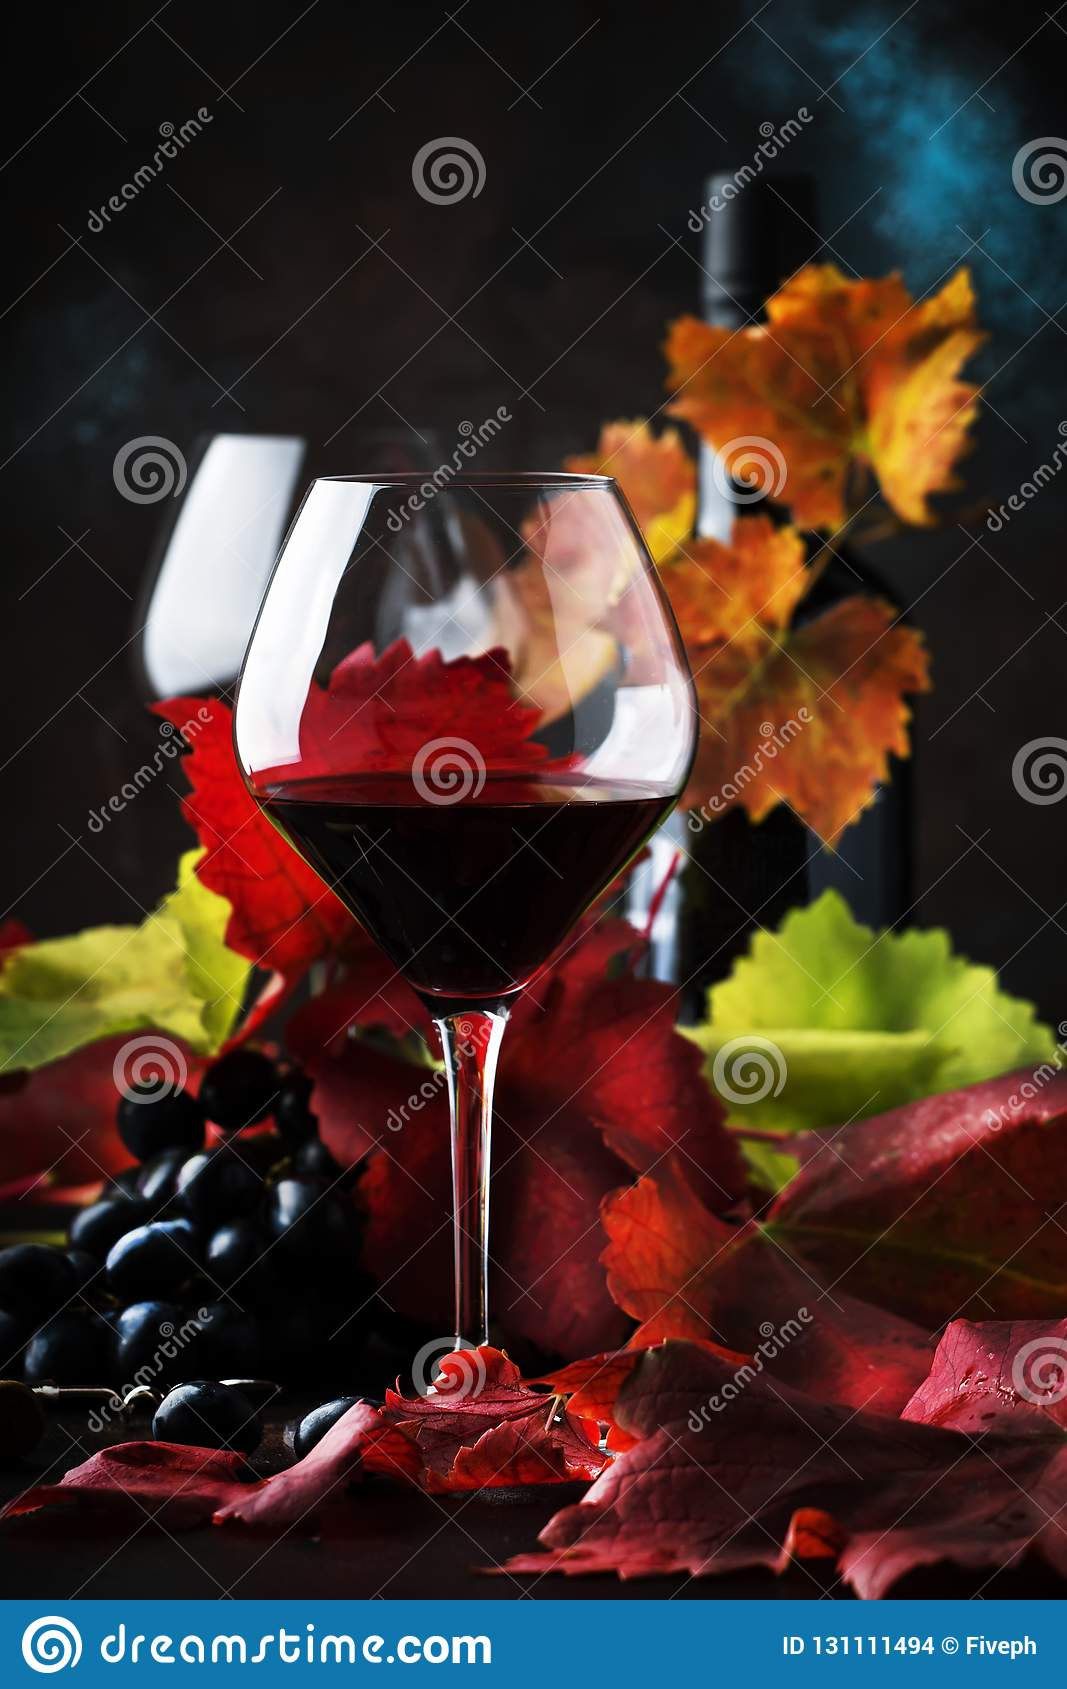 Dry Red Wine From Pinot Noir Grapes In Large Glasses, Autumn